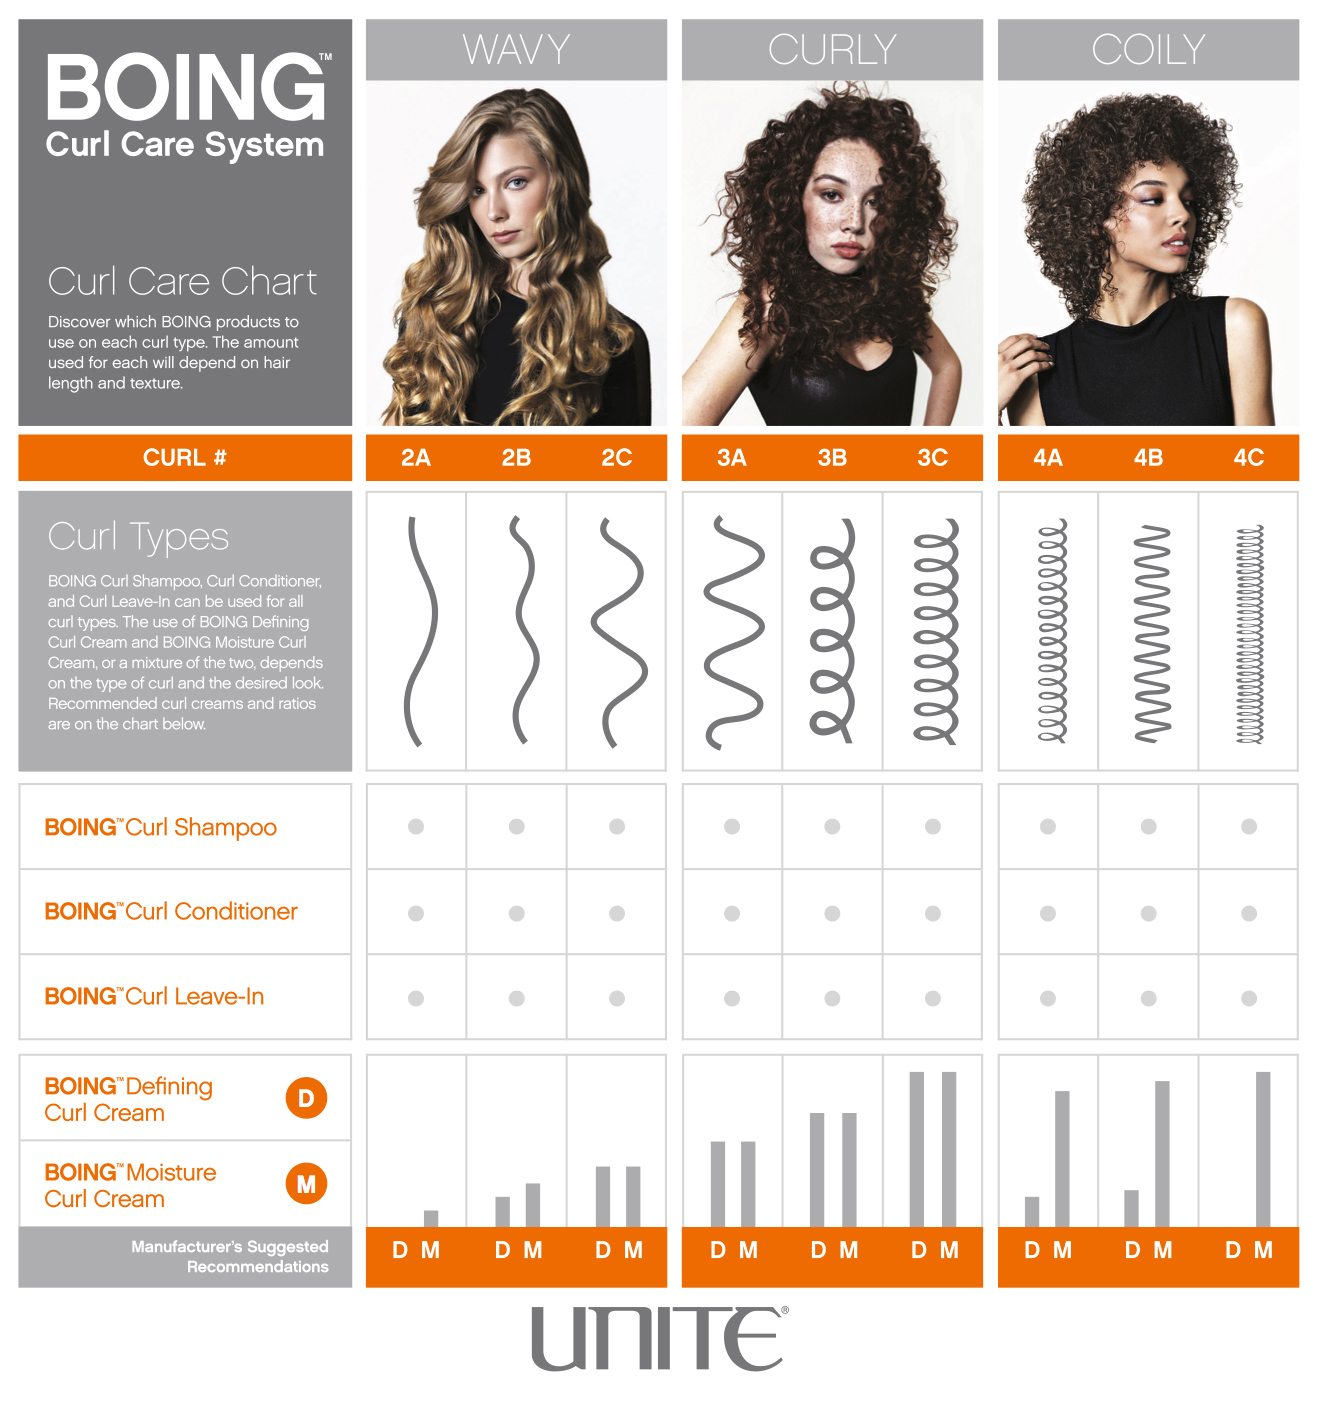 Check Out The Curl Chart Below And Then Stop In To Pick Some Up For Yourself